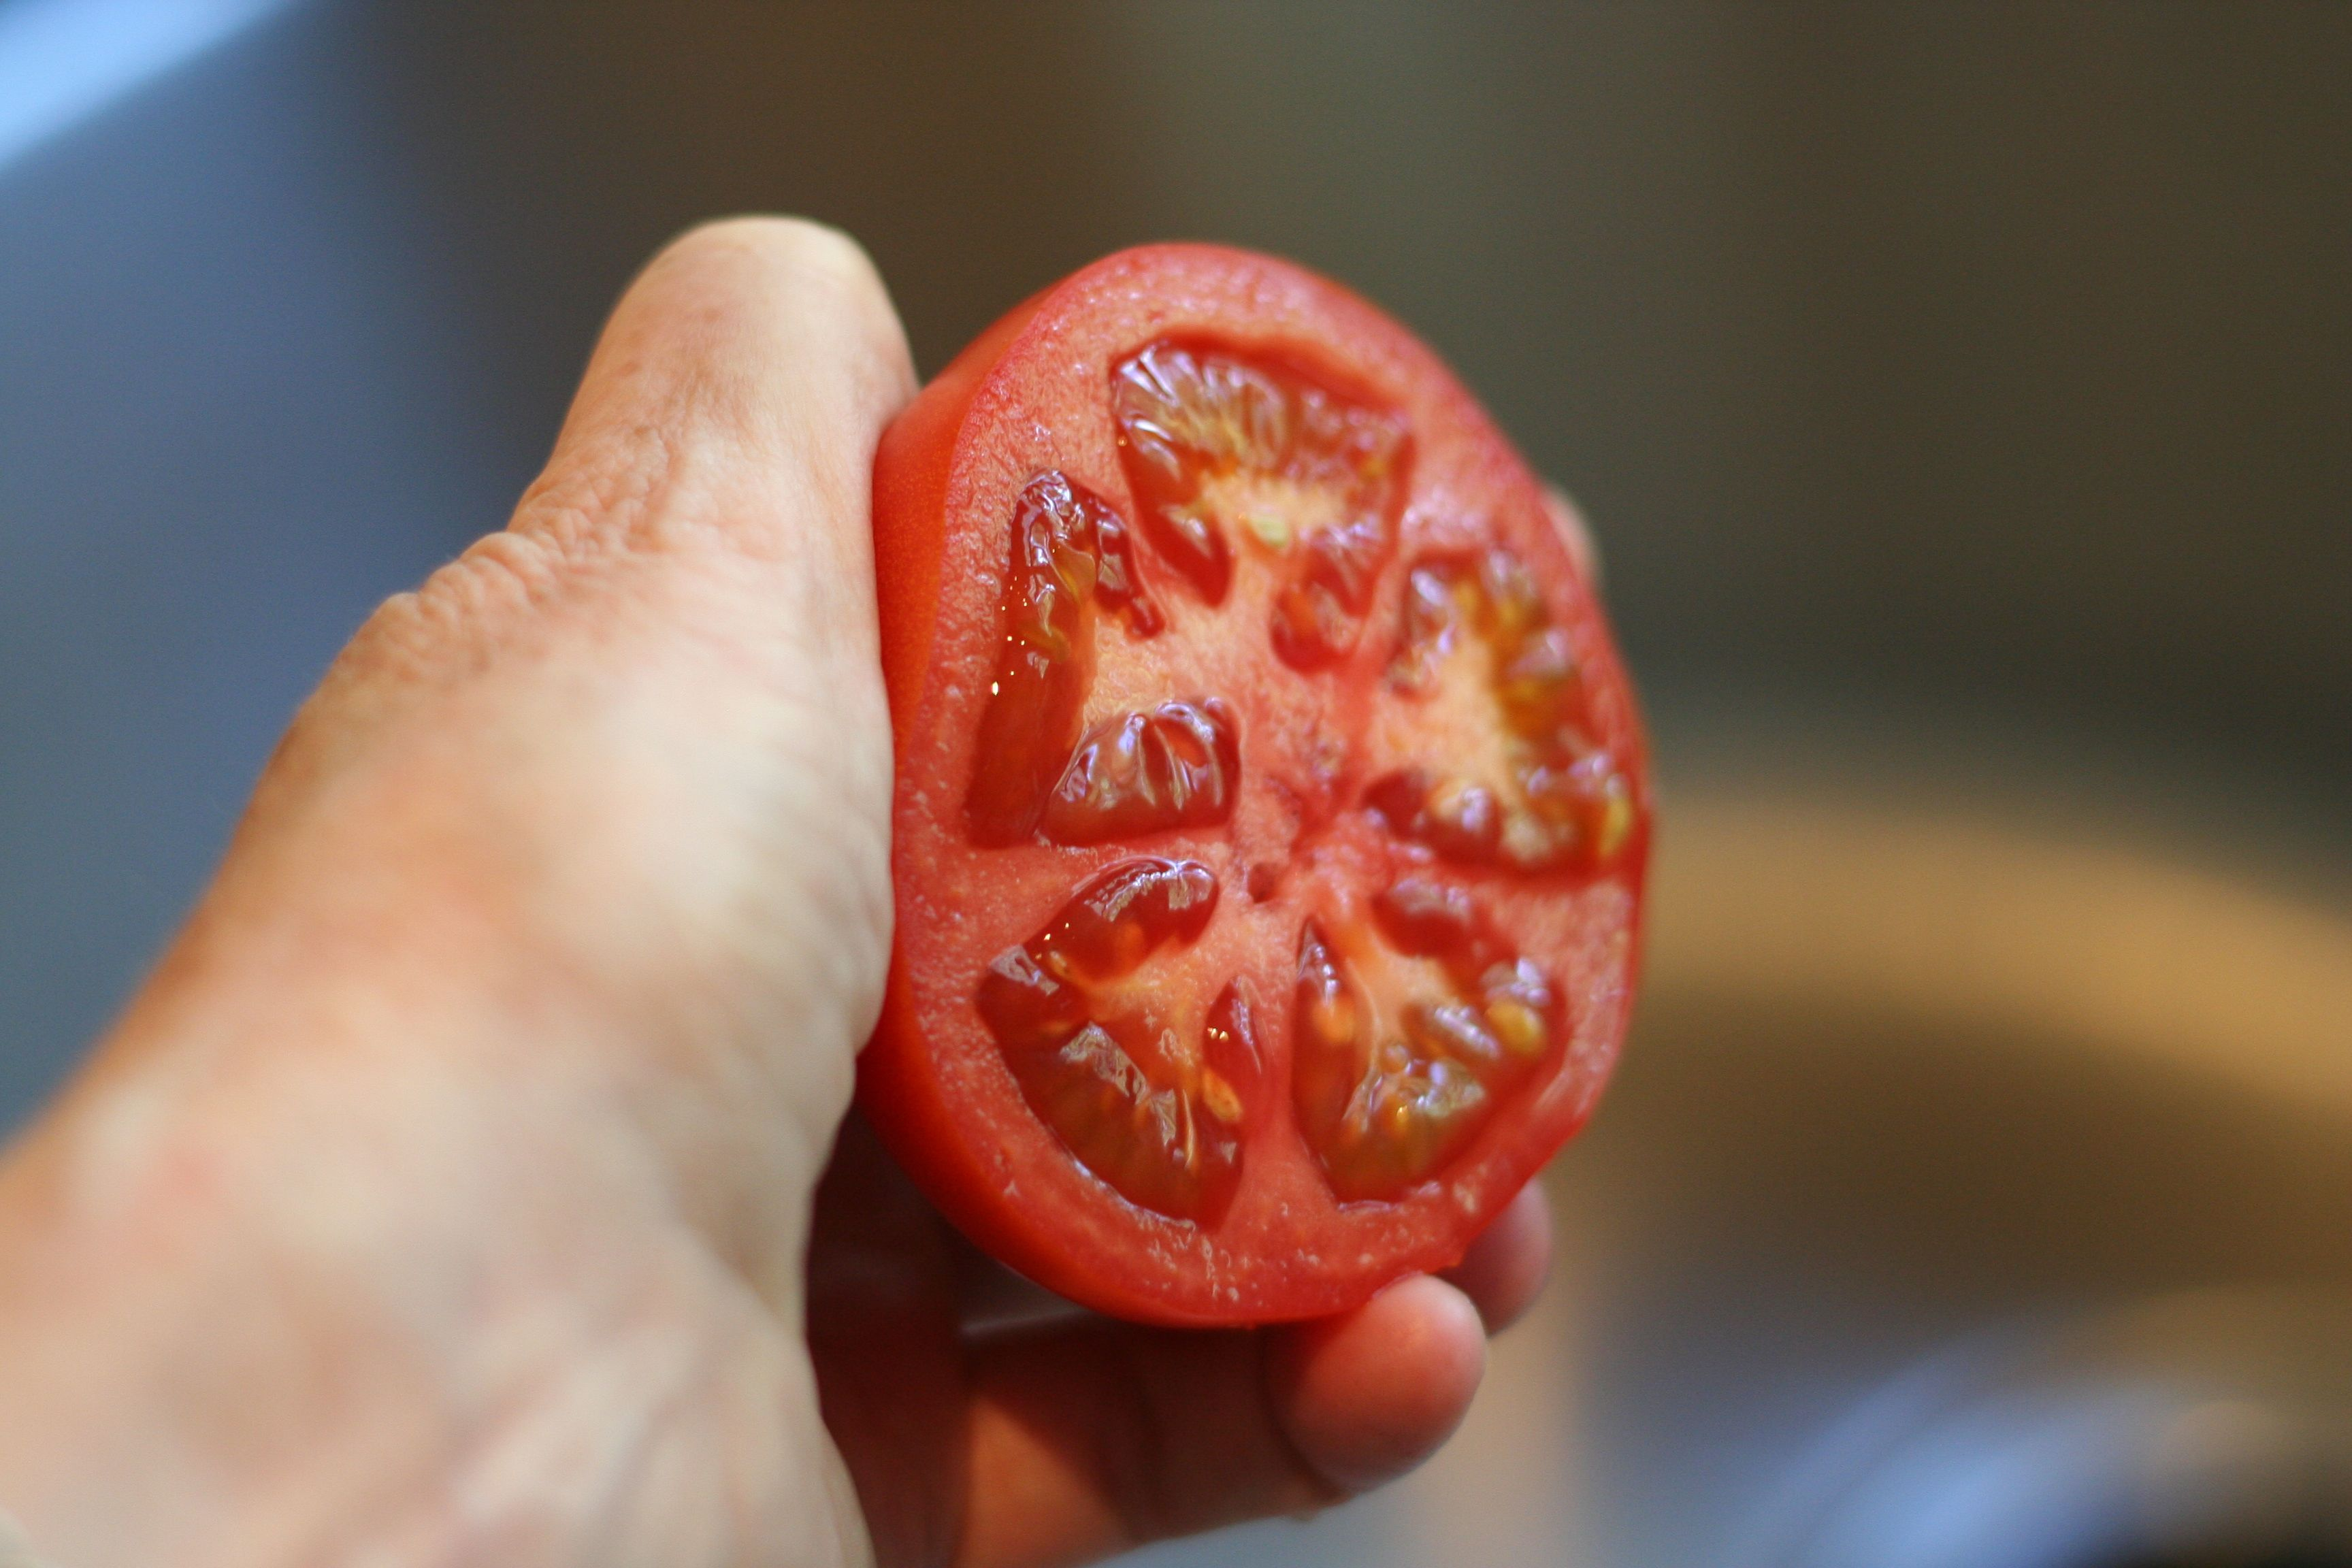 Tomatoes protect against sun damage Tomatoes protect against sun damage new pics